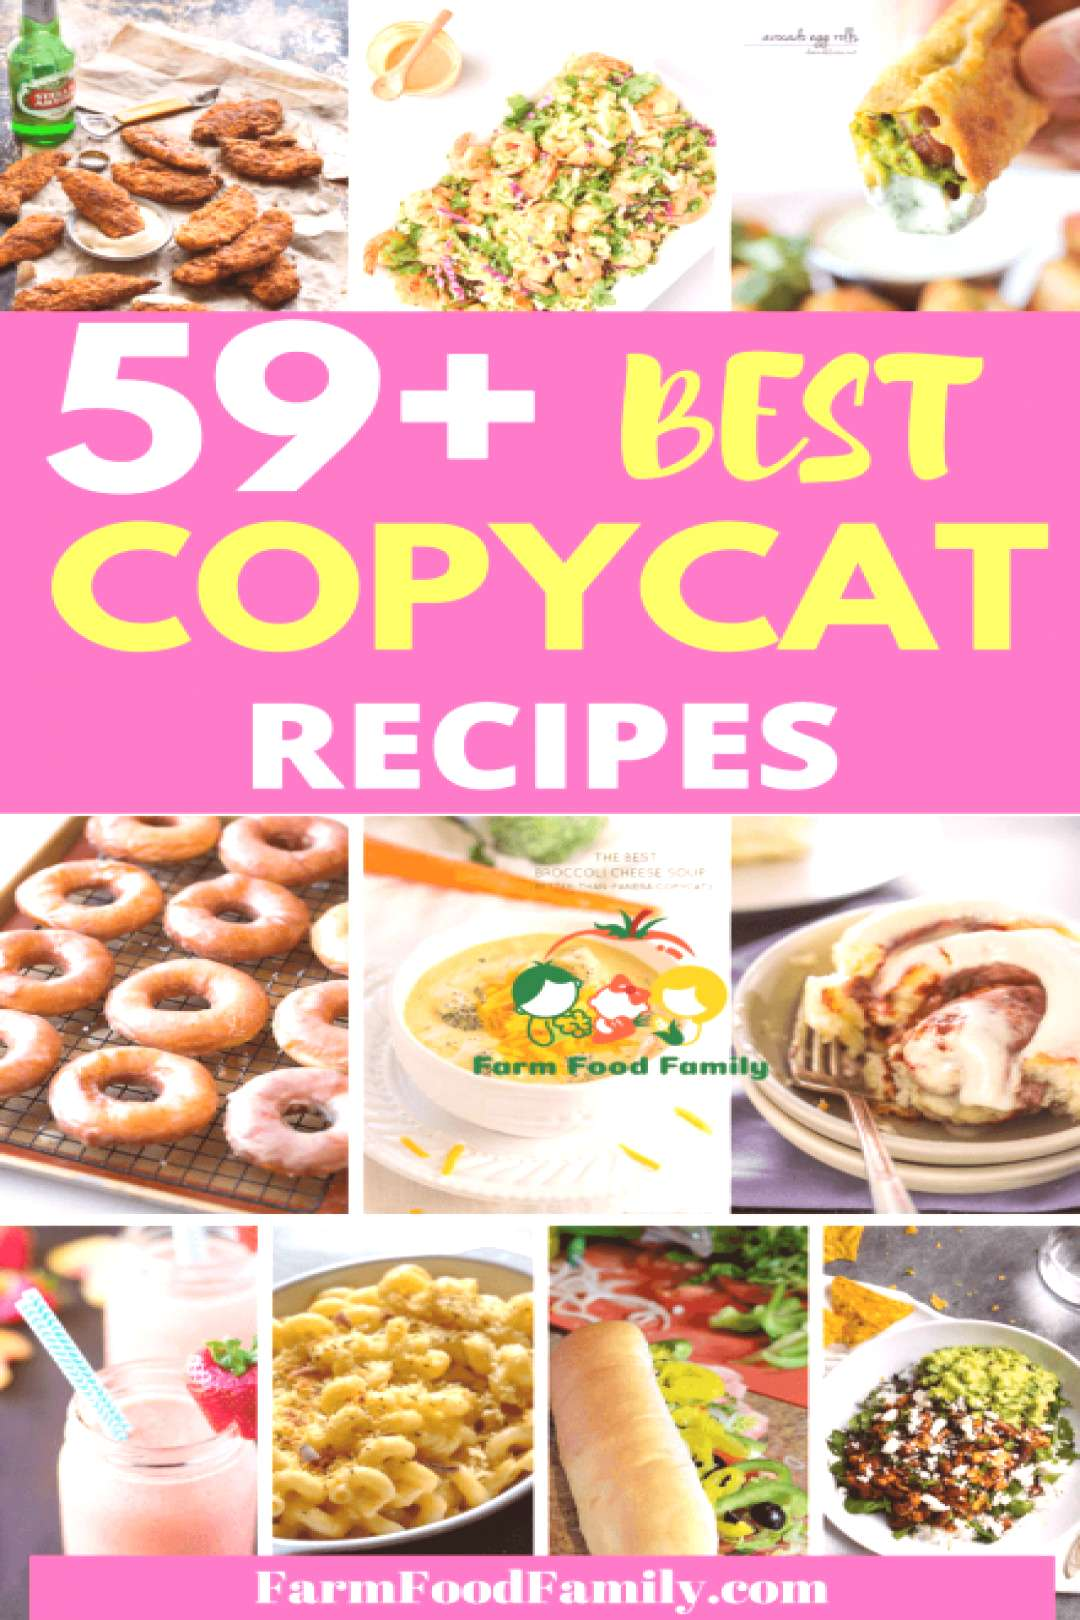 59+ Best Copycat Recipes From Restaurants To Make At Home (2020)-#bestrecipes You're looking for